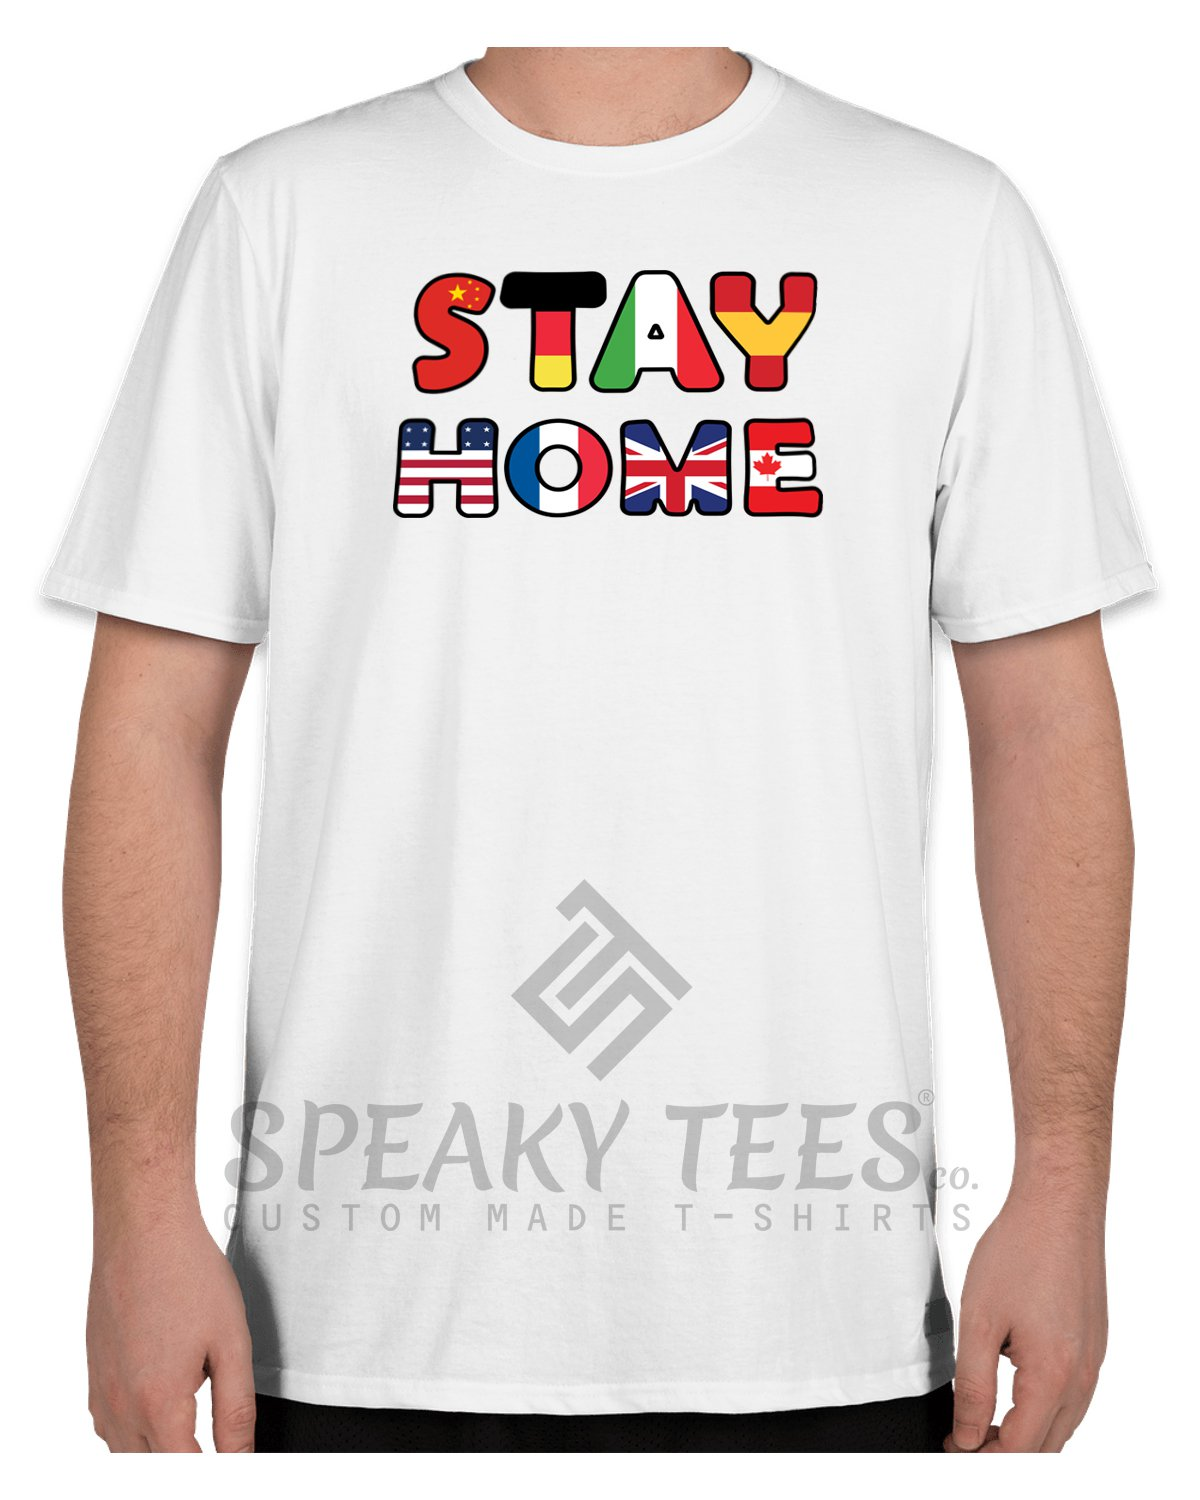 Size 2XL STAY HOME Covid-19 White Tshirts for Unisex 100% Cotton Regular & Plus Sizes T shirts